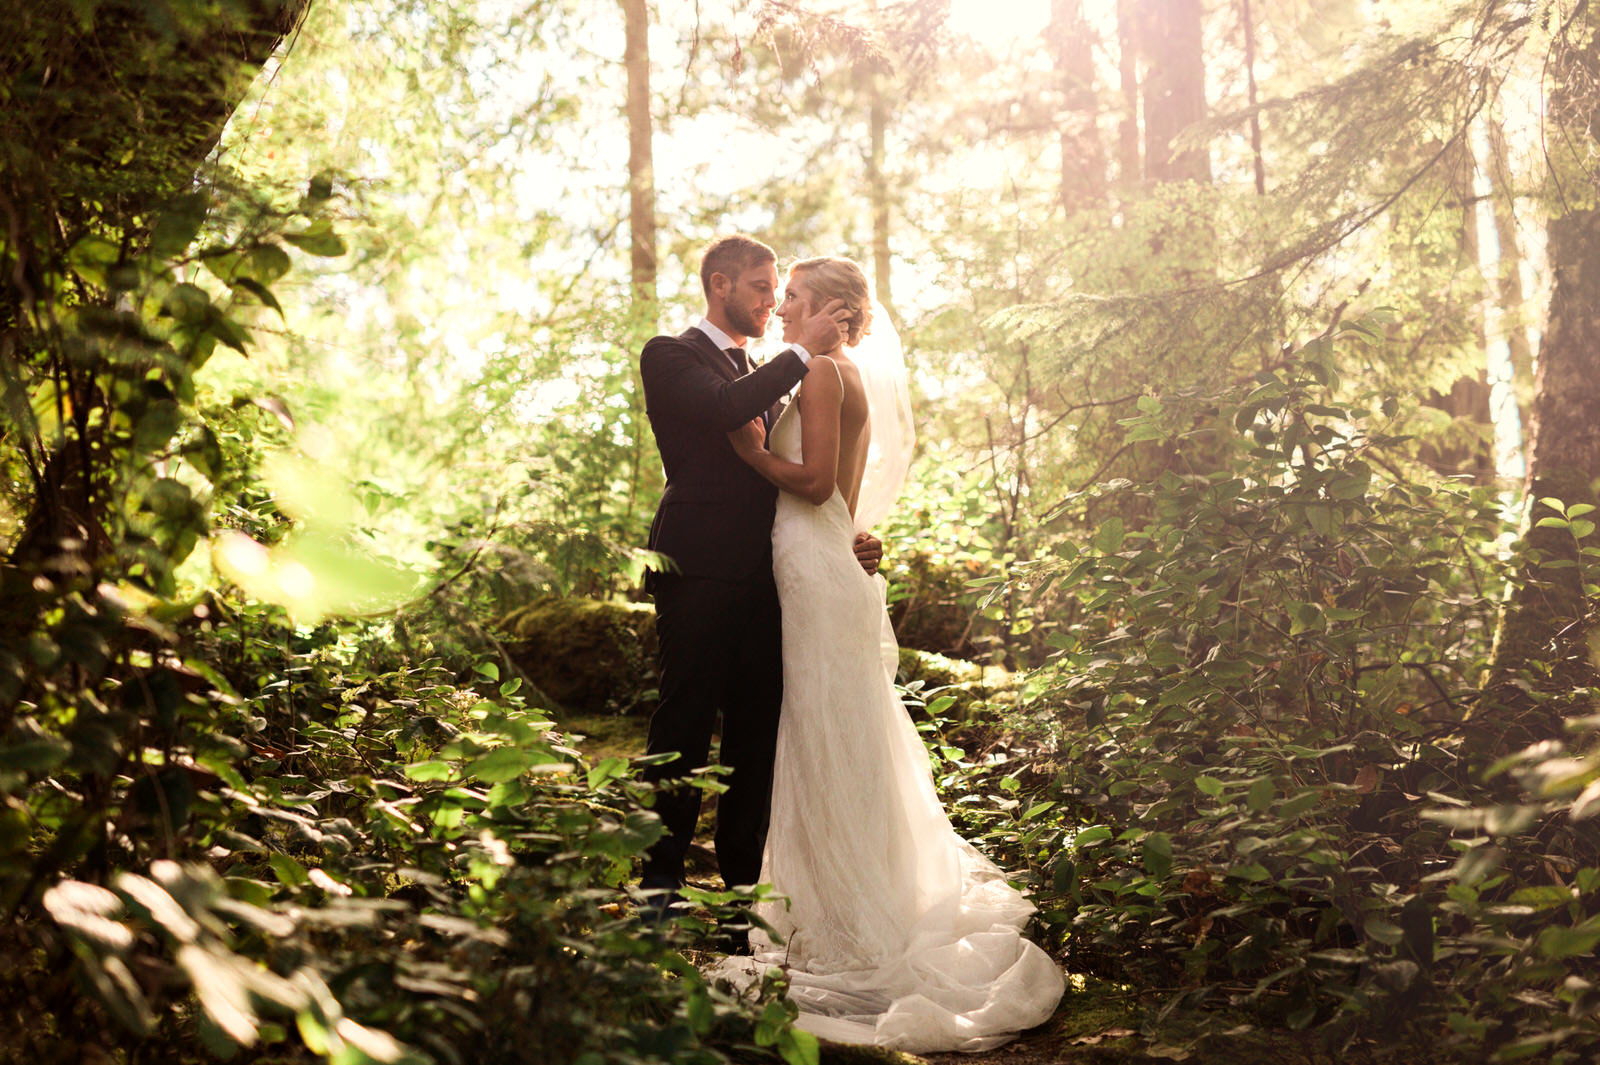 West Coast Wilderness Lodge Wedding - Mary and Matt - Sunshine Coast Wedding Photographer - Jennifer Picard -IMG_4825-1.jpg